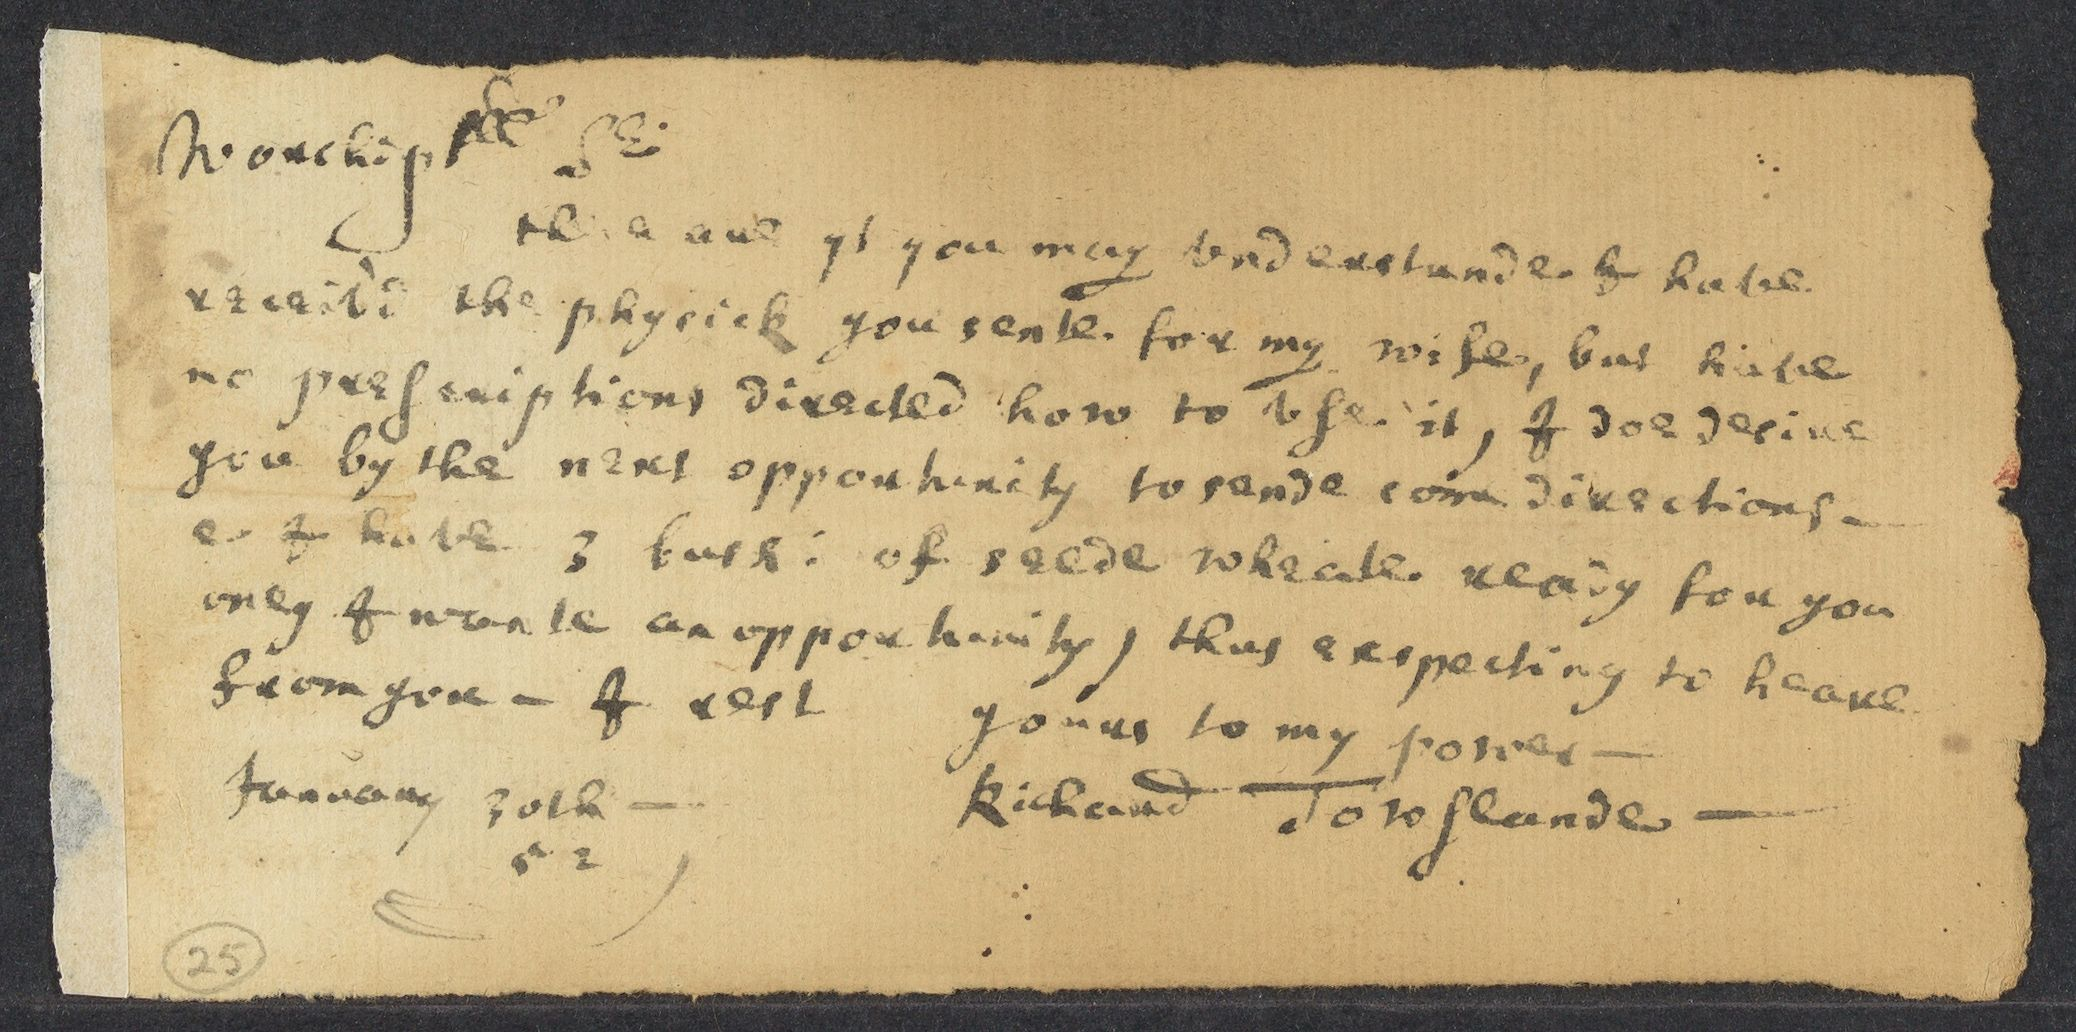 Towslande, Richard, autographed letter signed to John Winthrop, 1 side (2 pages), 1652 January 30